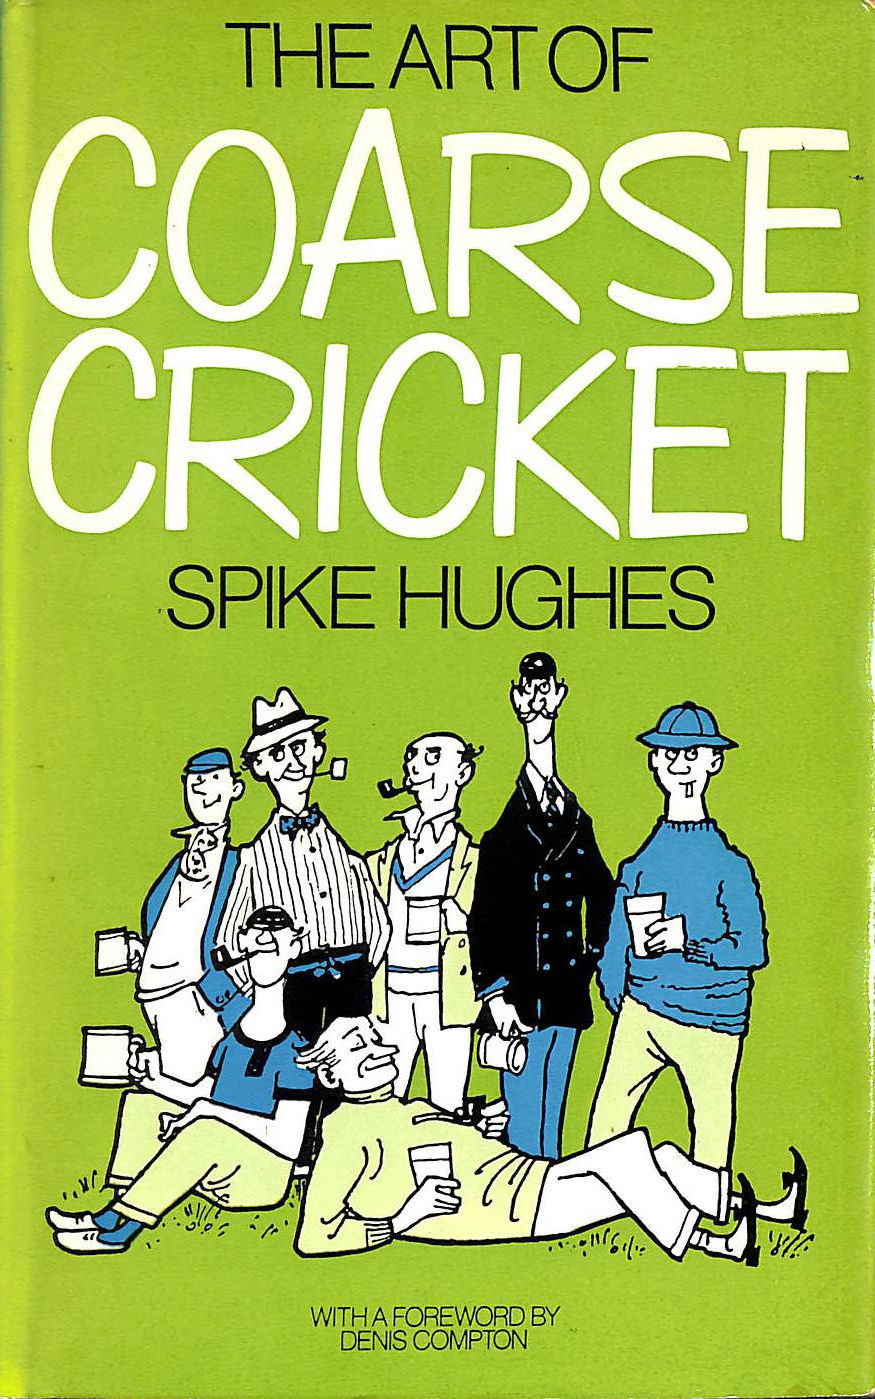 The Art of Coarse Cricket, Spike Hughes